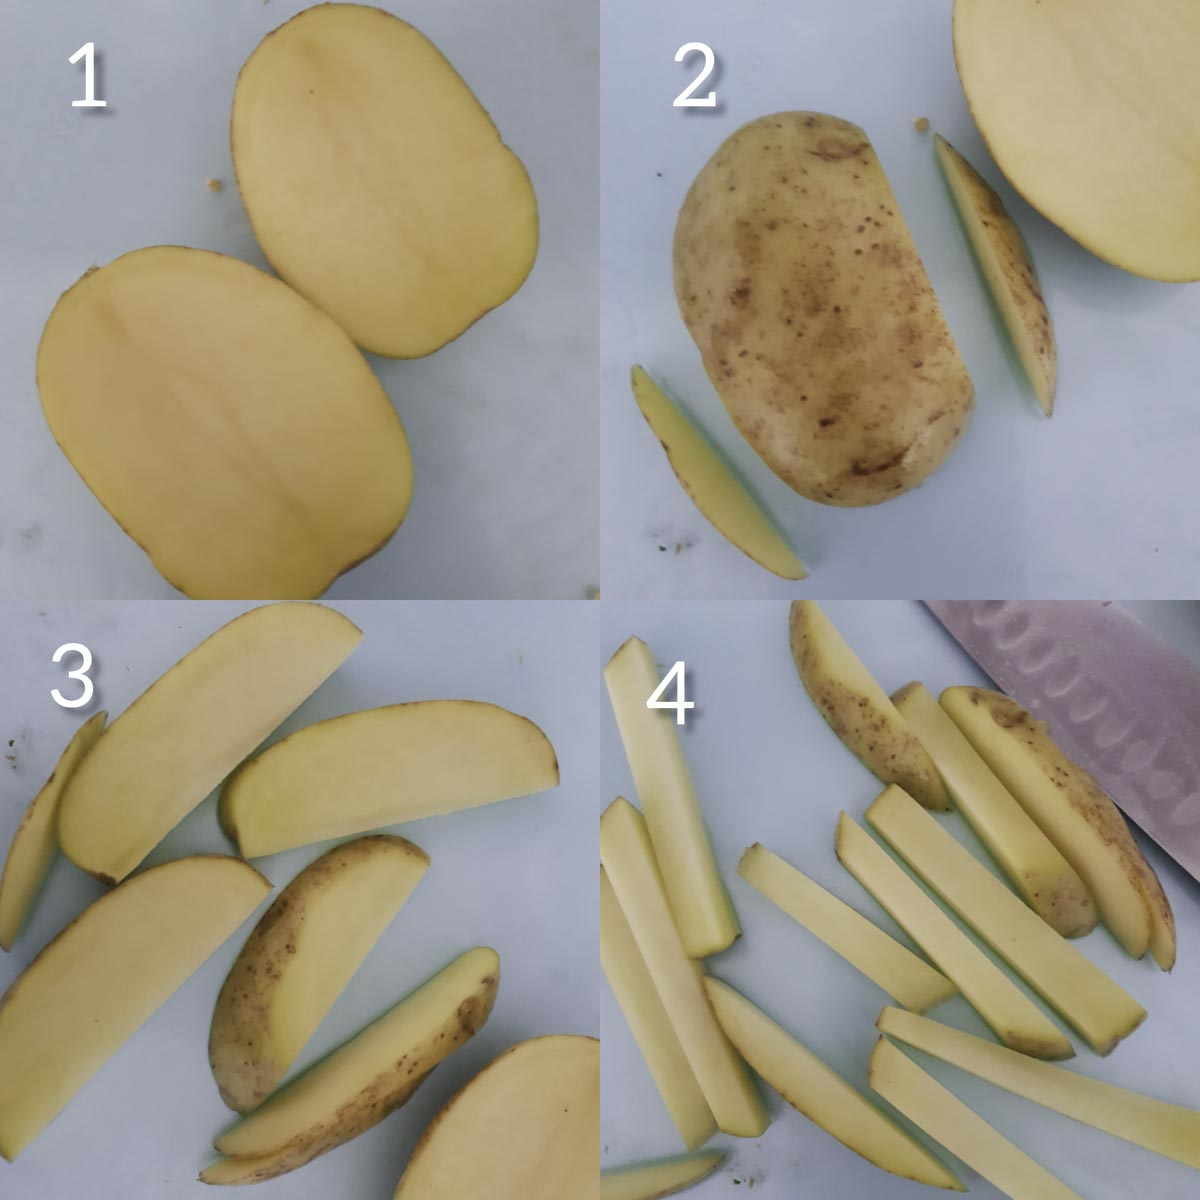 a collage of steps showing how to cut potatoes into fries